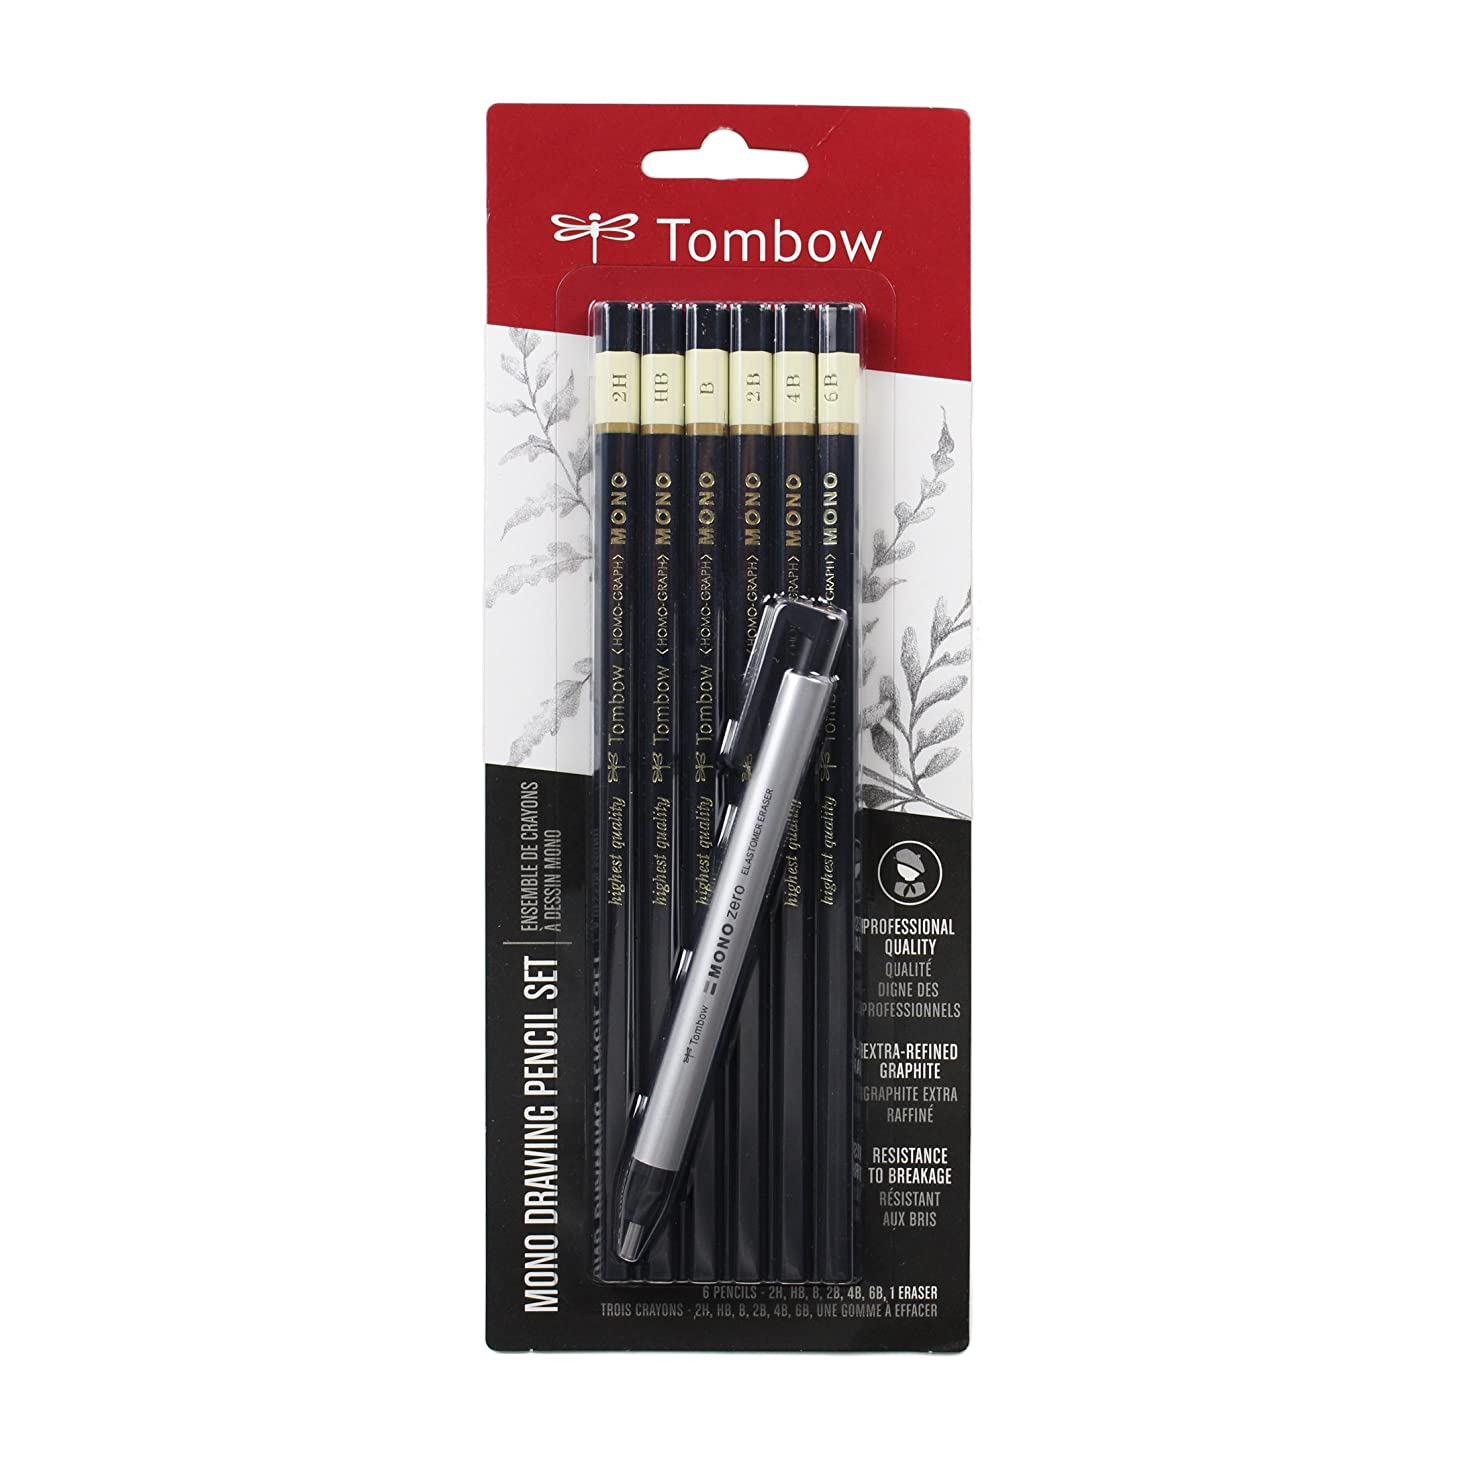 Tombow 61002 MONO Drawing Pencil Set, Combo 6-Pack. Professional Quality Graphite Pencil Set with Precision Zero Eraser